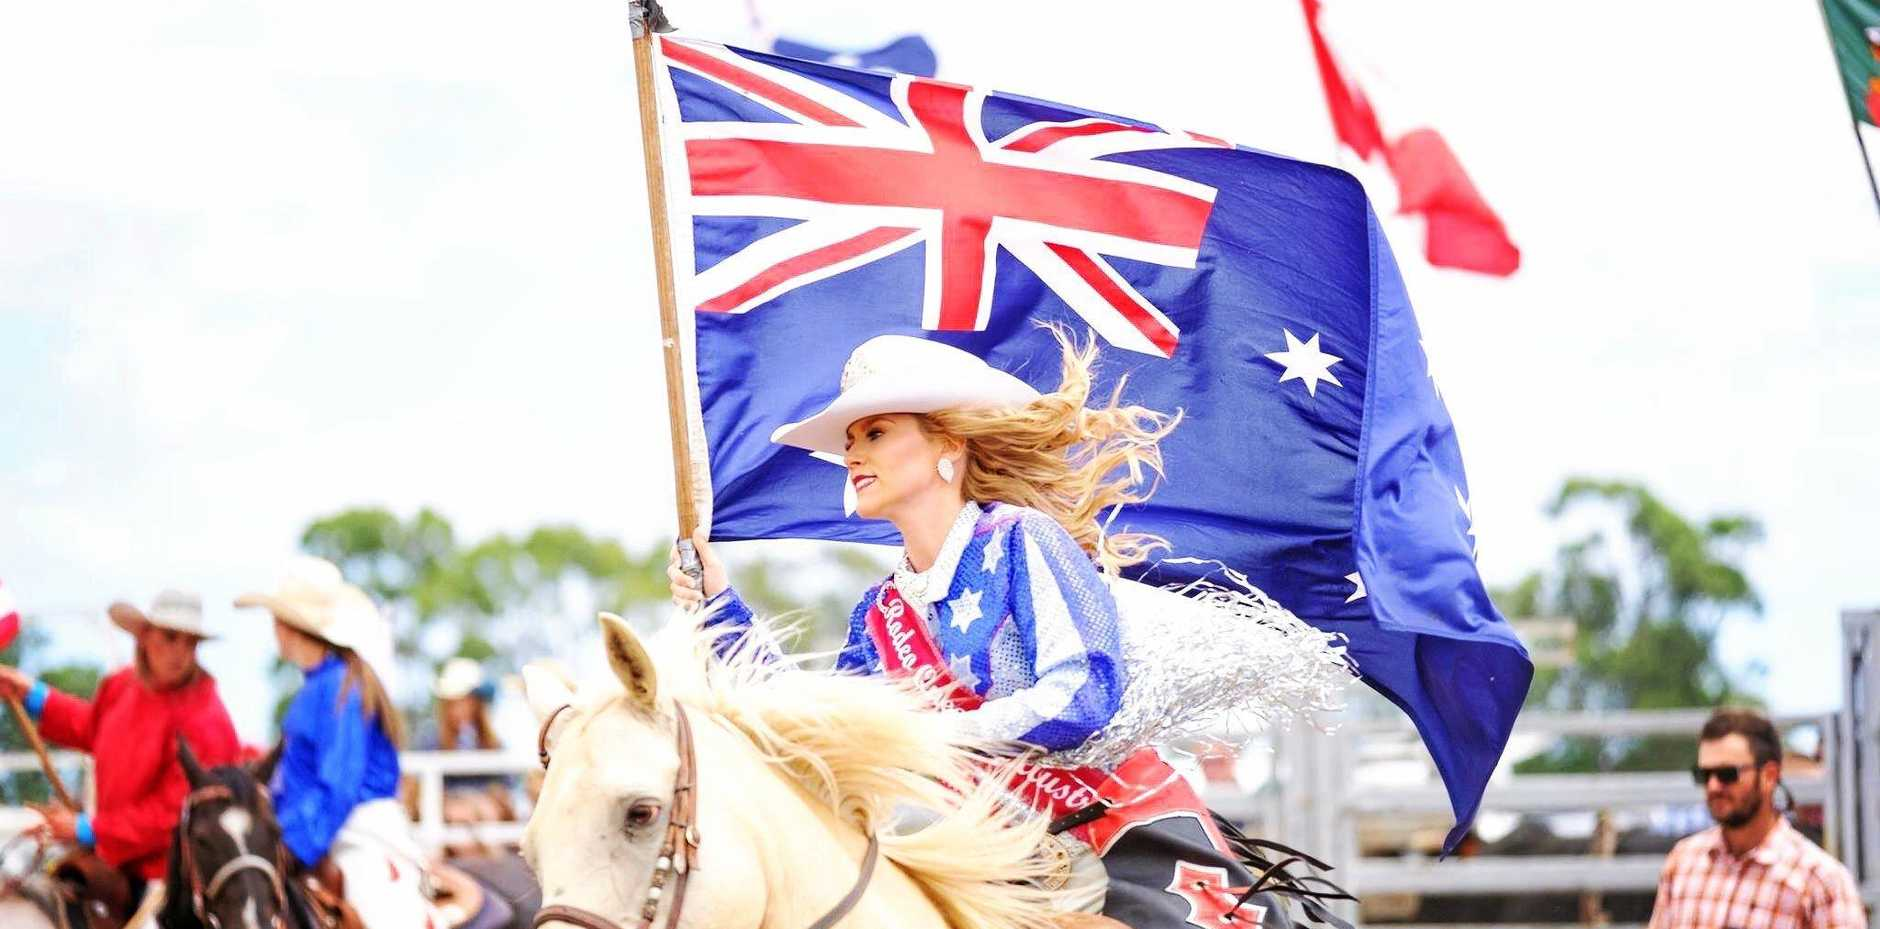 Rodeo Queen of Australia Bessie Smits will no longer be able to ride horses after a near-fatal accident.